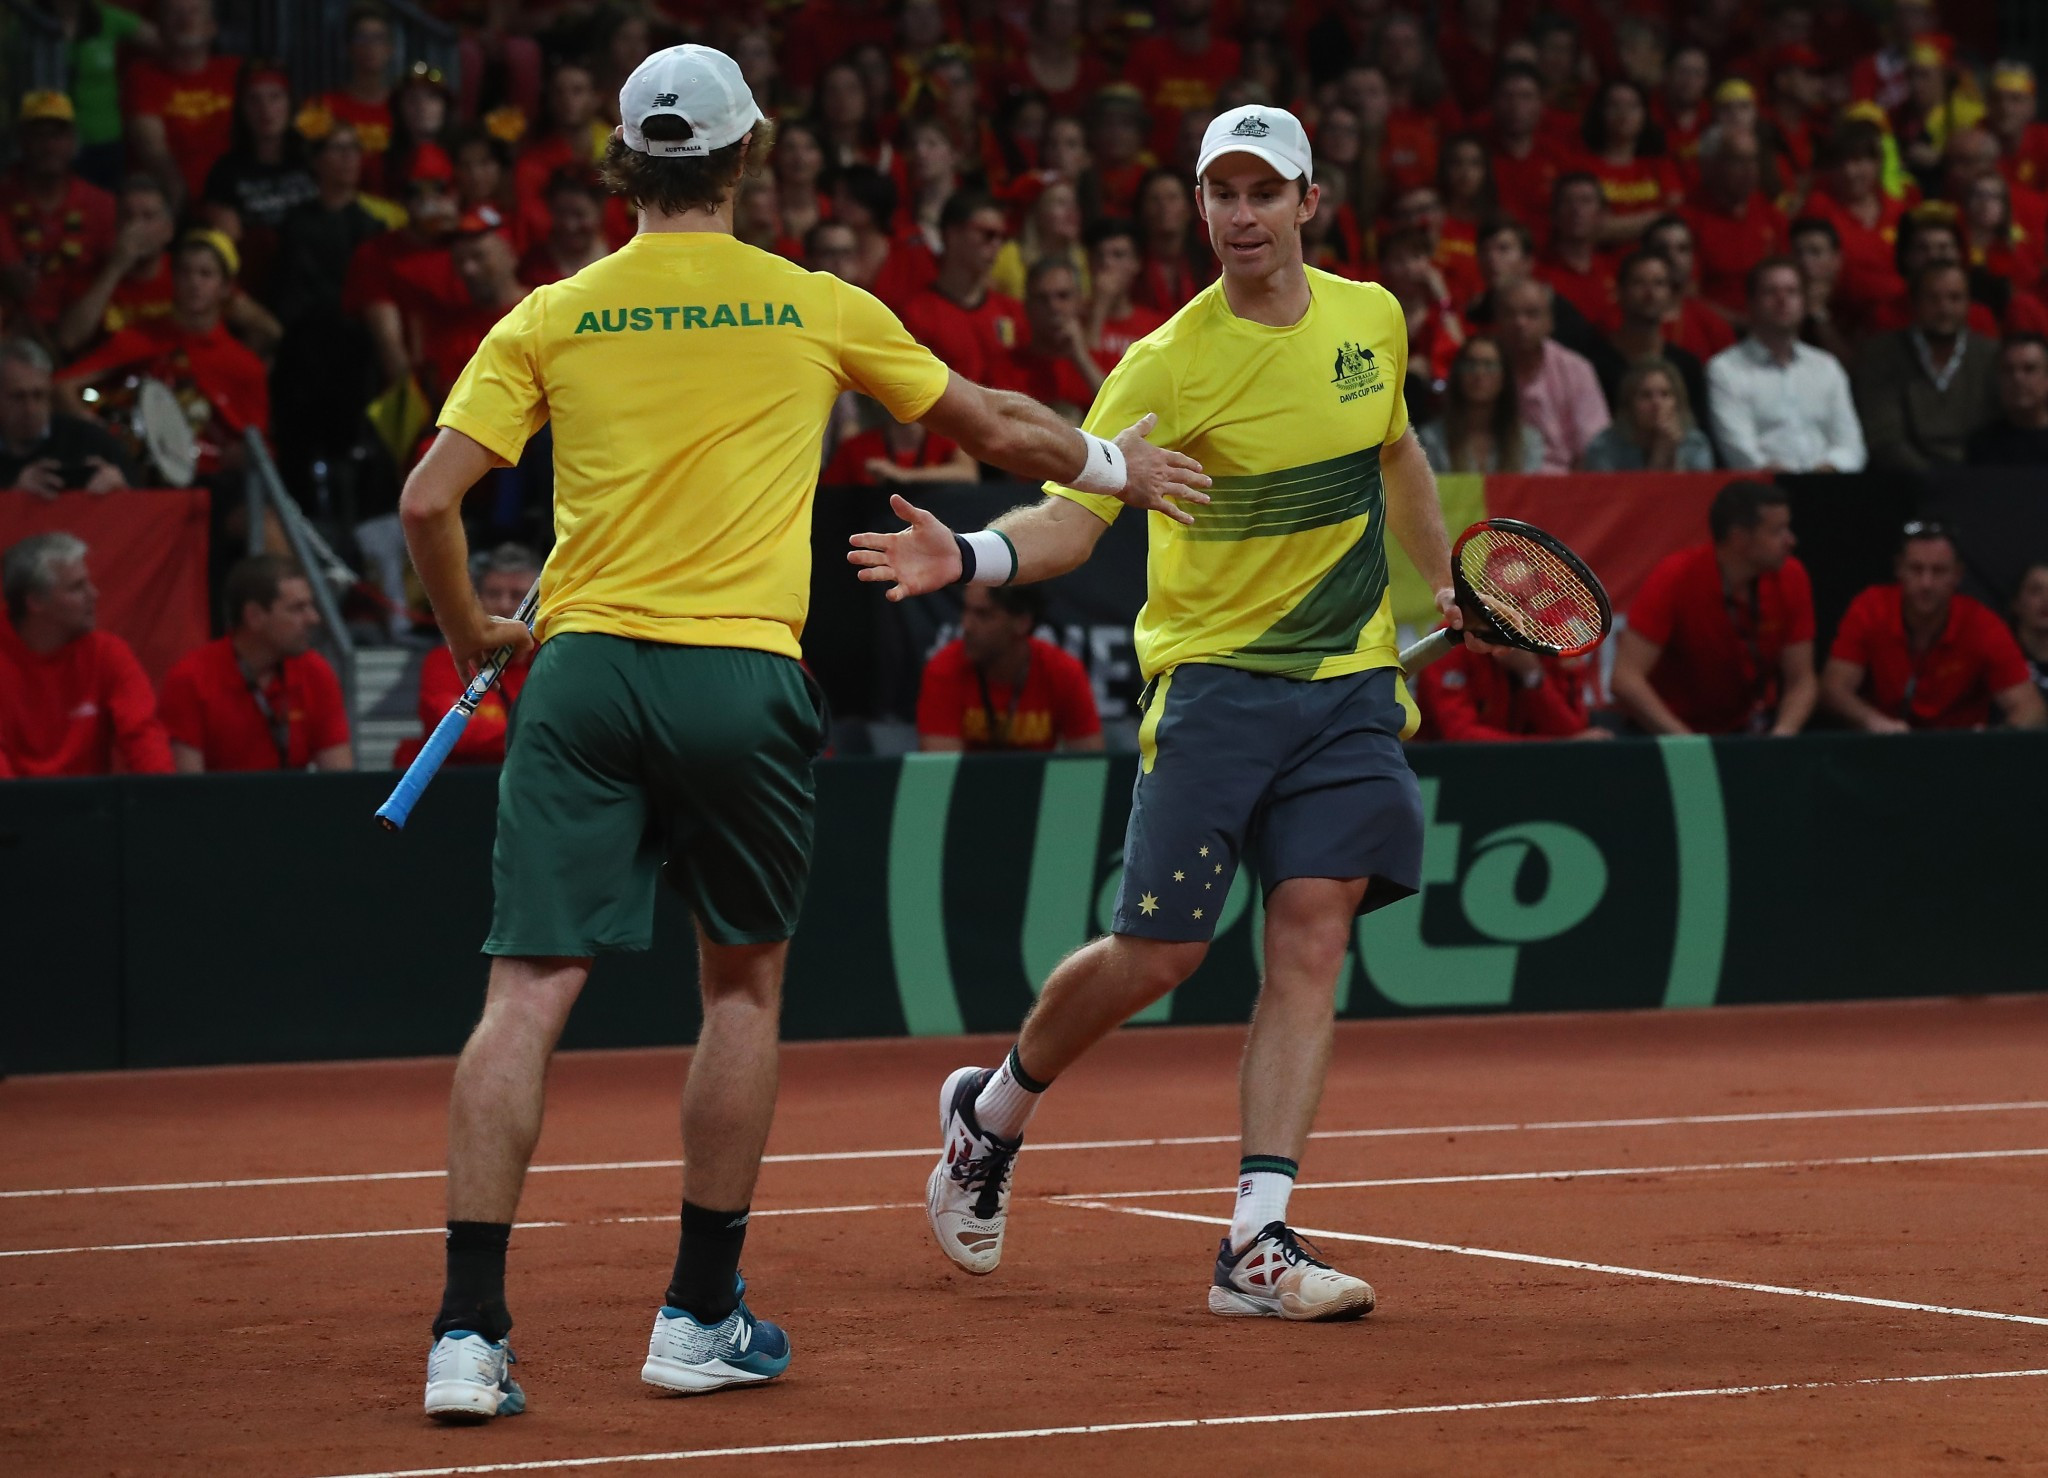 Australia lead Belgium 2-1 in their Davis Cup semi-final following today's doubles action ©Getty Images